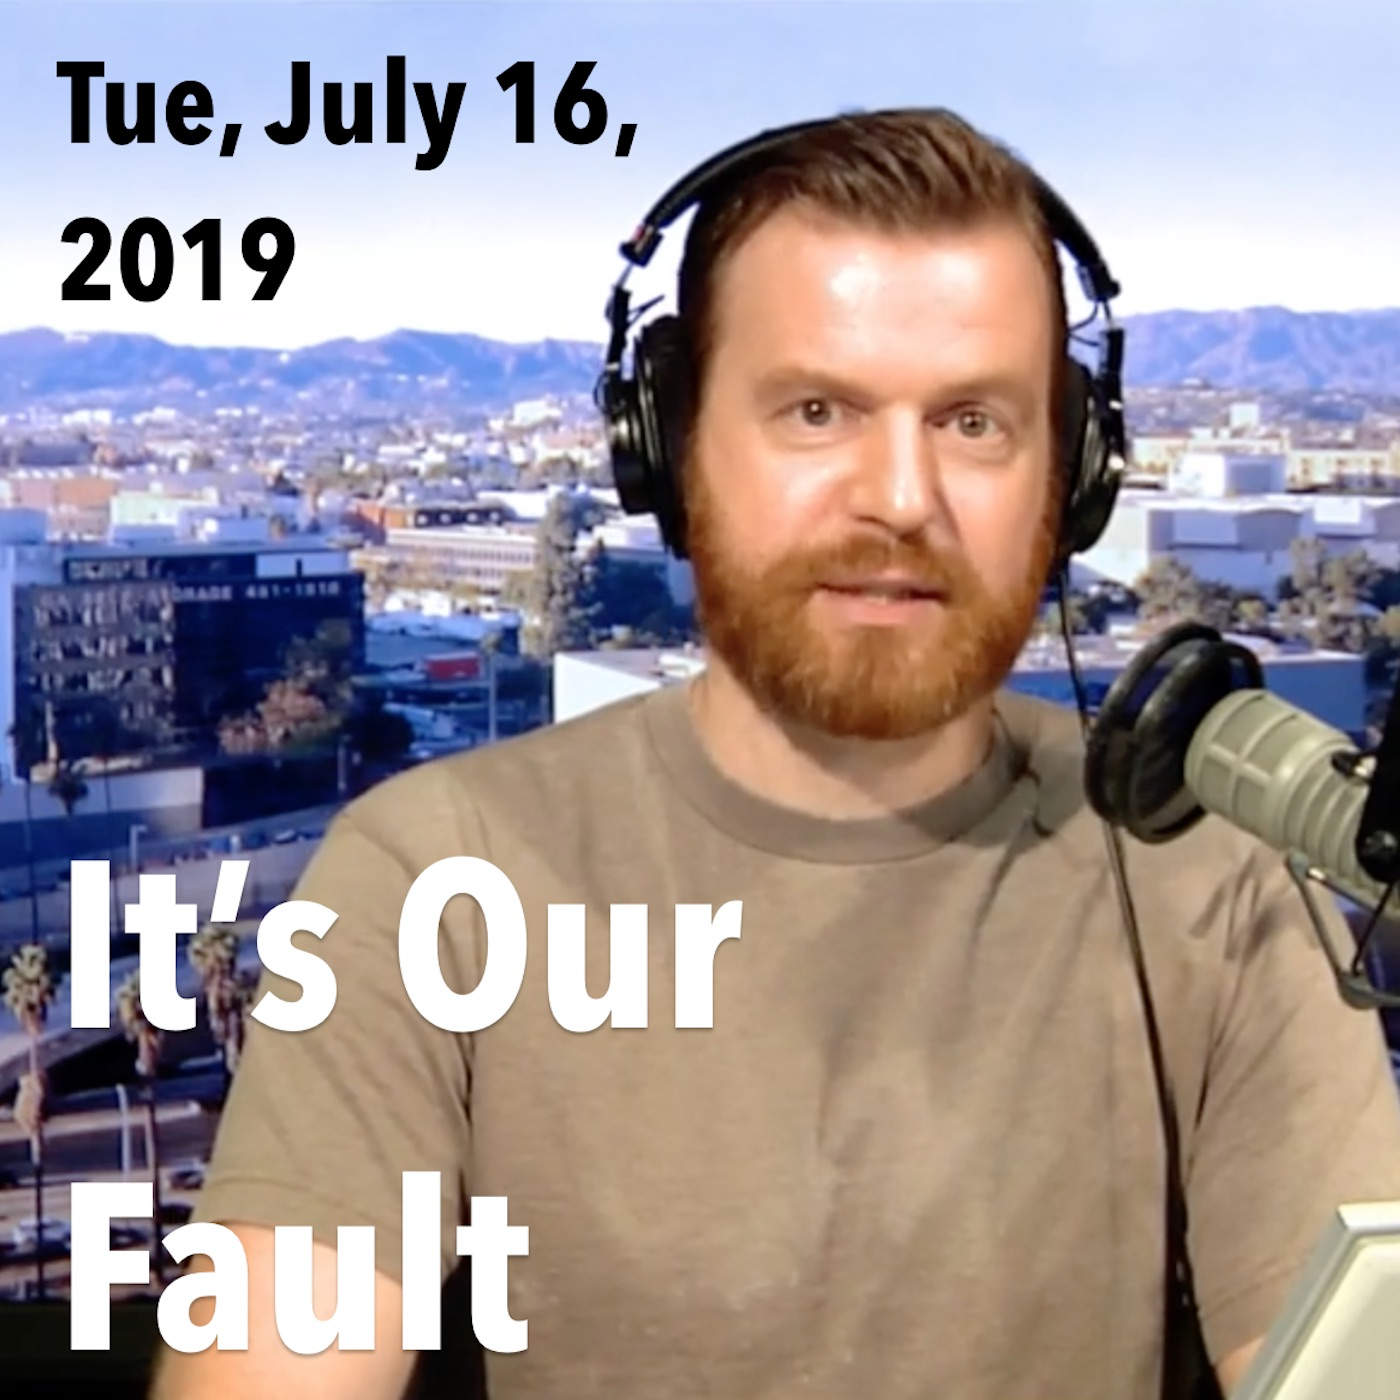 Square thumbnail from today's show, Tuesday, July 16, 2019: It's our fault!